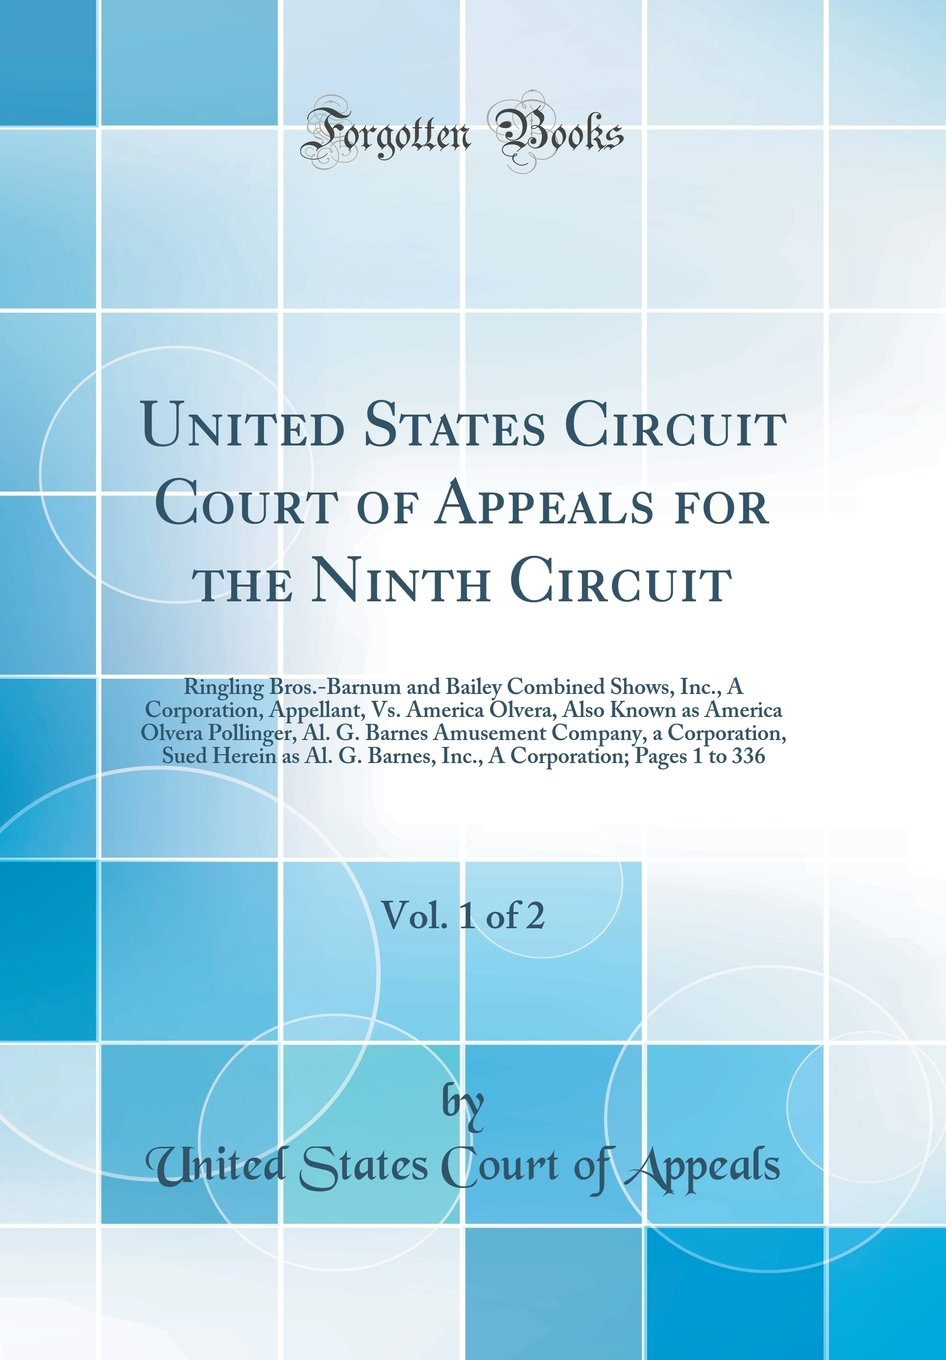 Read Online United States Circuit Court of Appeals for the Ninth Circuit, Vol. 1 of 2: Ringling Bros.-Barnum and Bailey Combined Shows, Inc., A Corporation, ... Al. G. Barnes Amusement Company, a Corp pdf epub